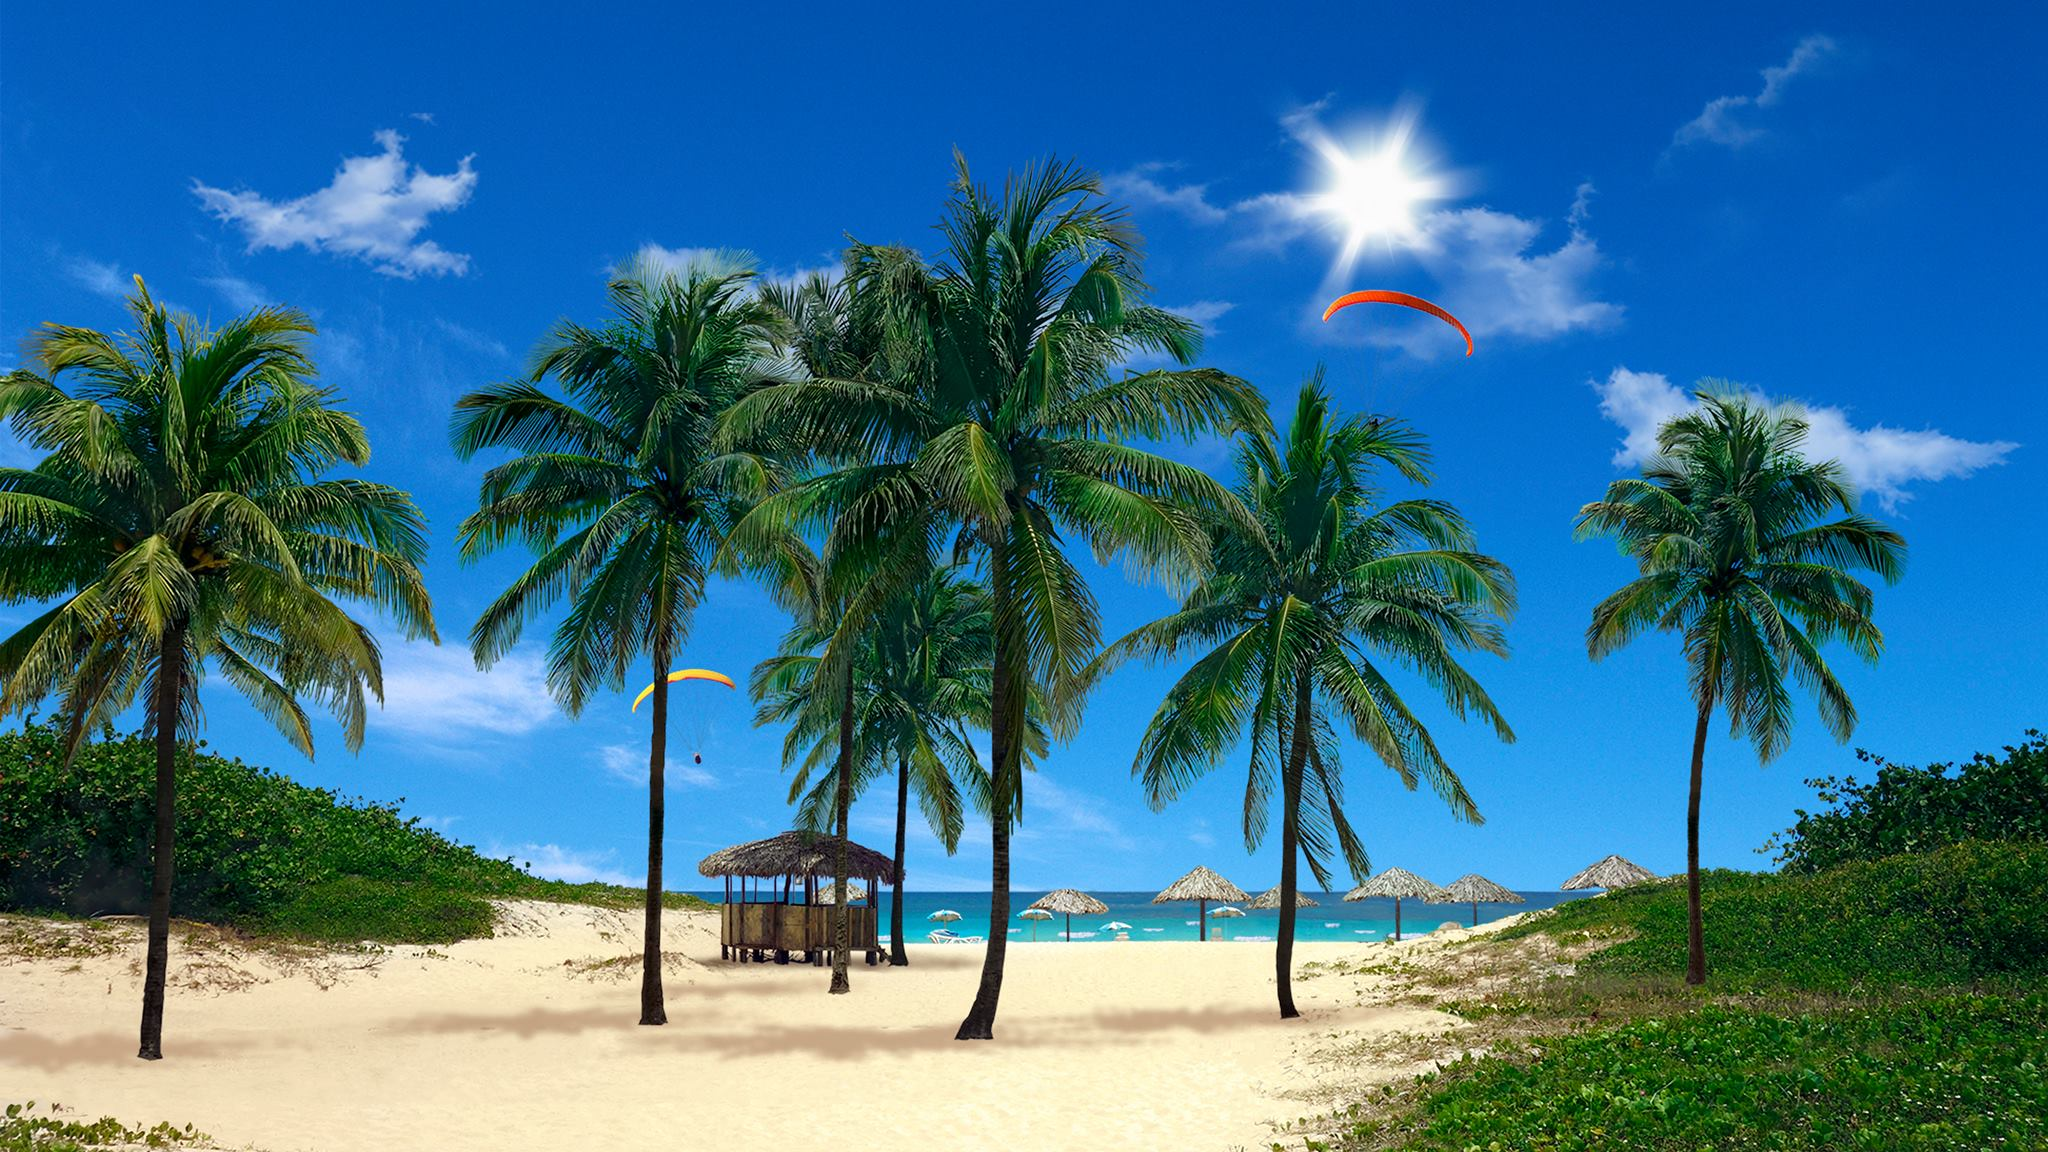 real snowfall & beach palms 3d are two live wallpapers to spruce up